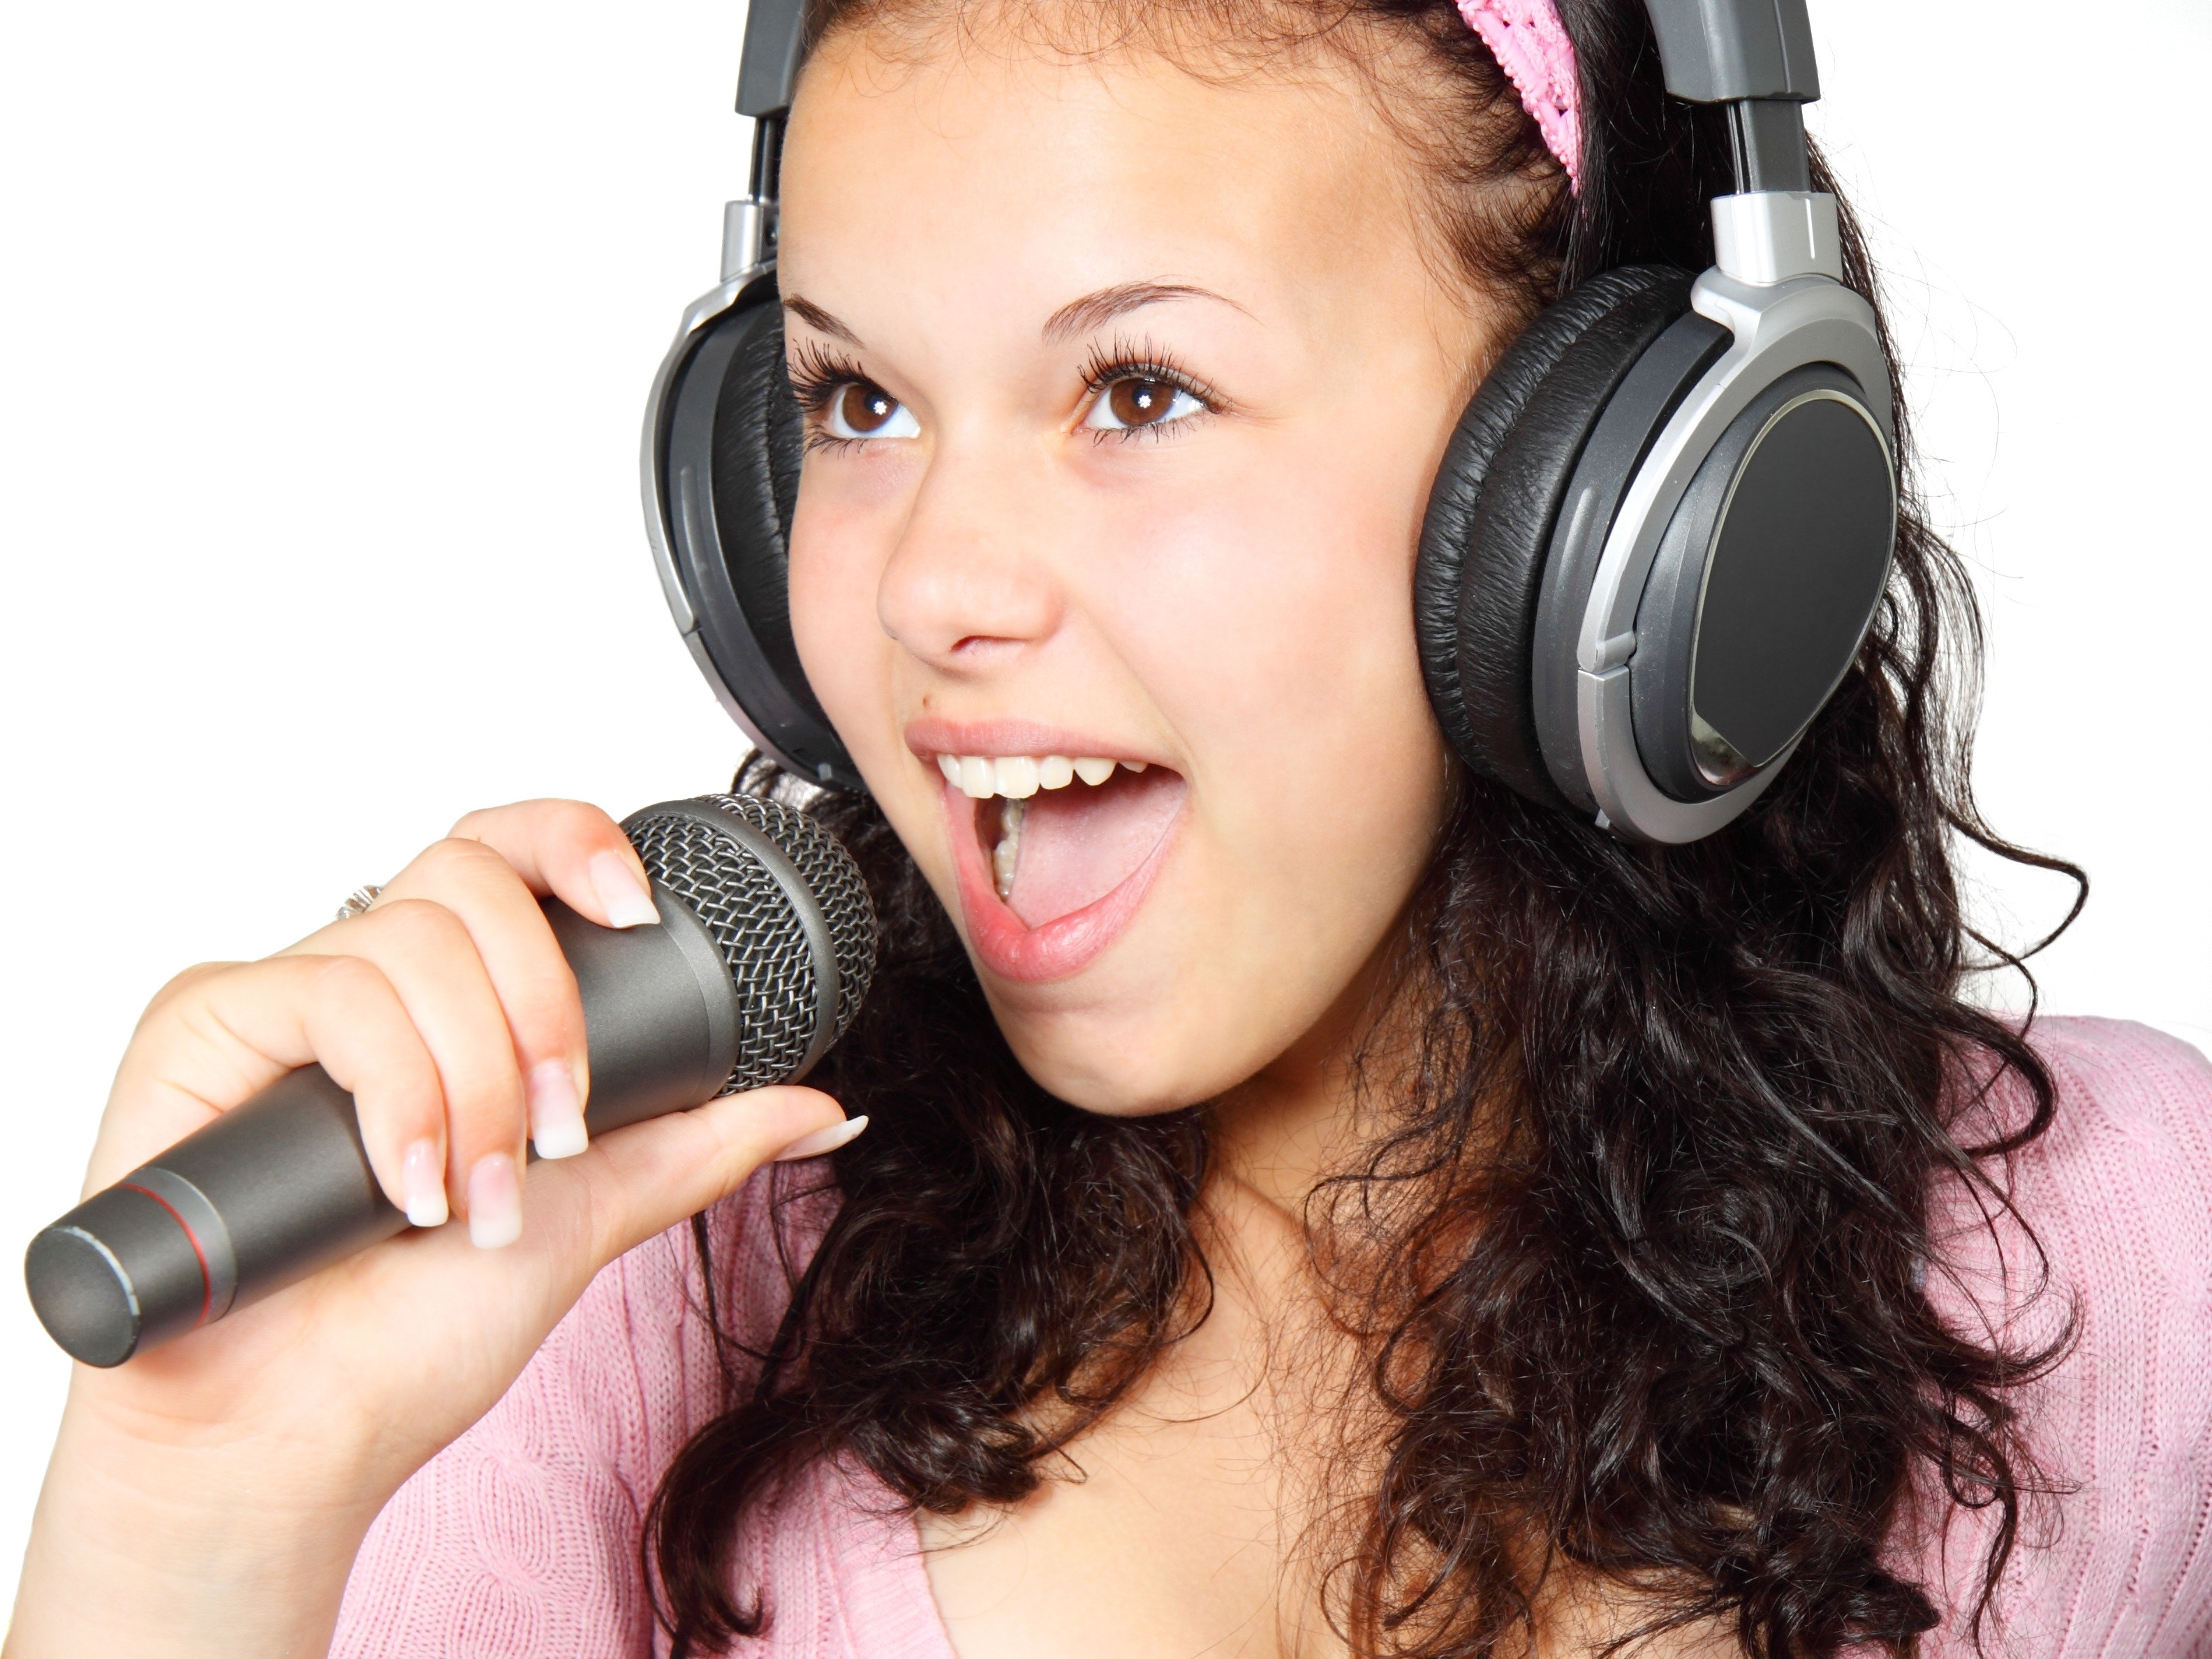 Teen female singer holding a microphone with headphones on